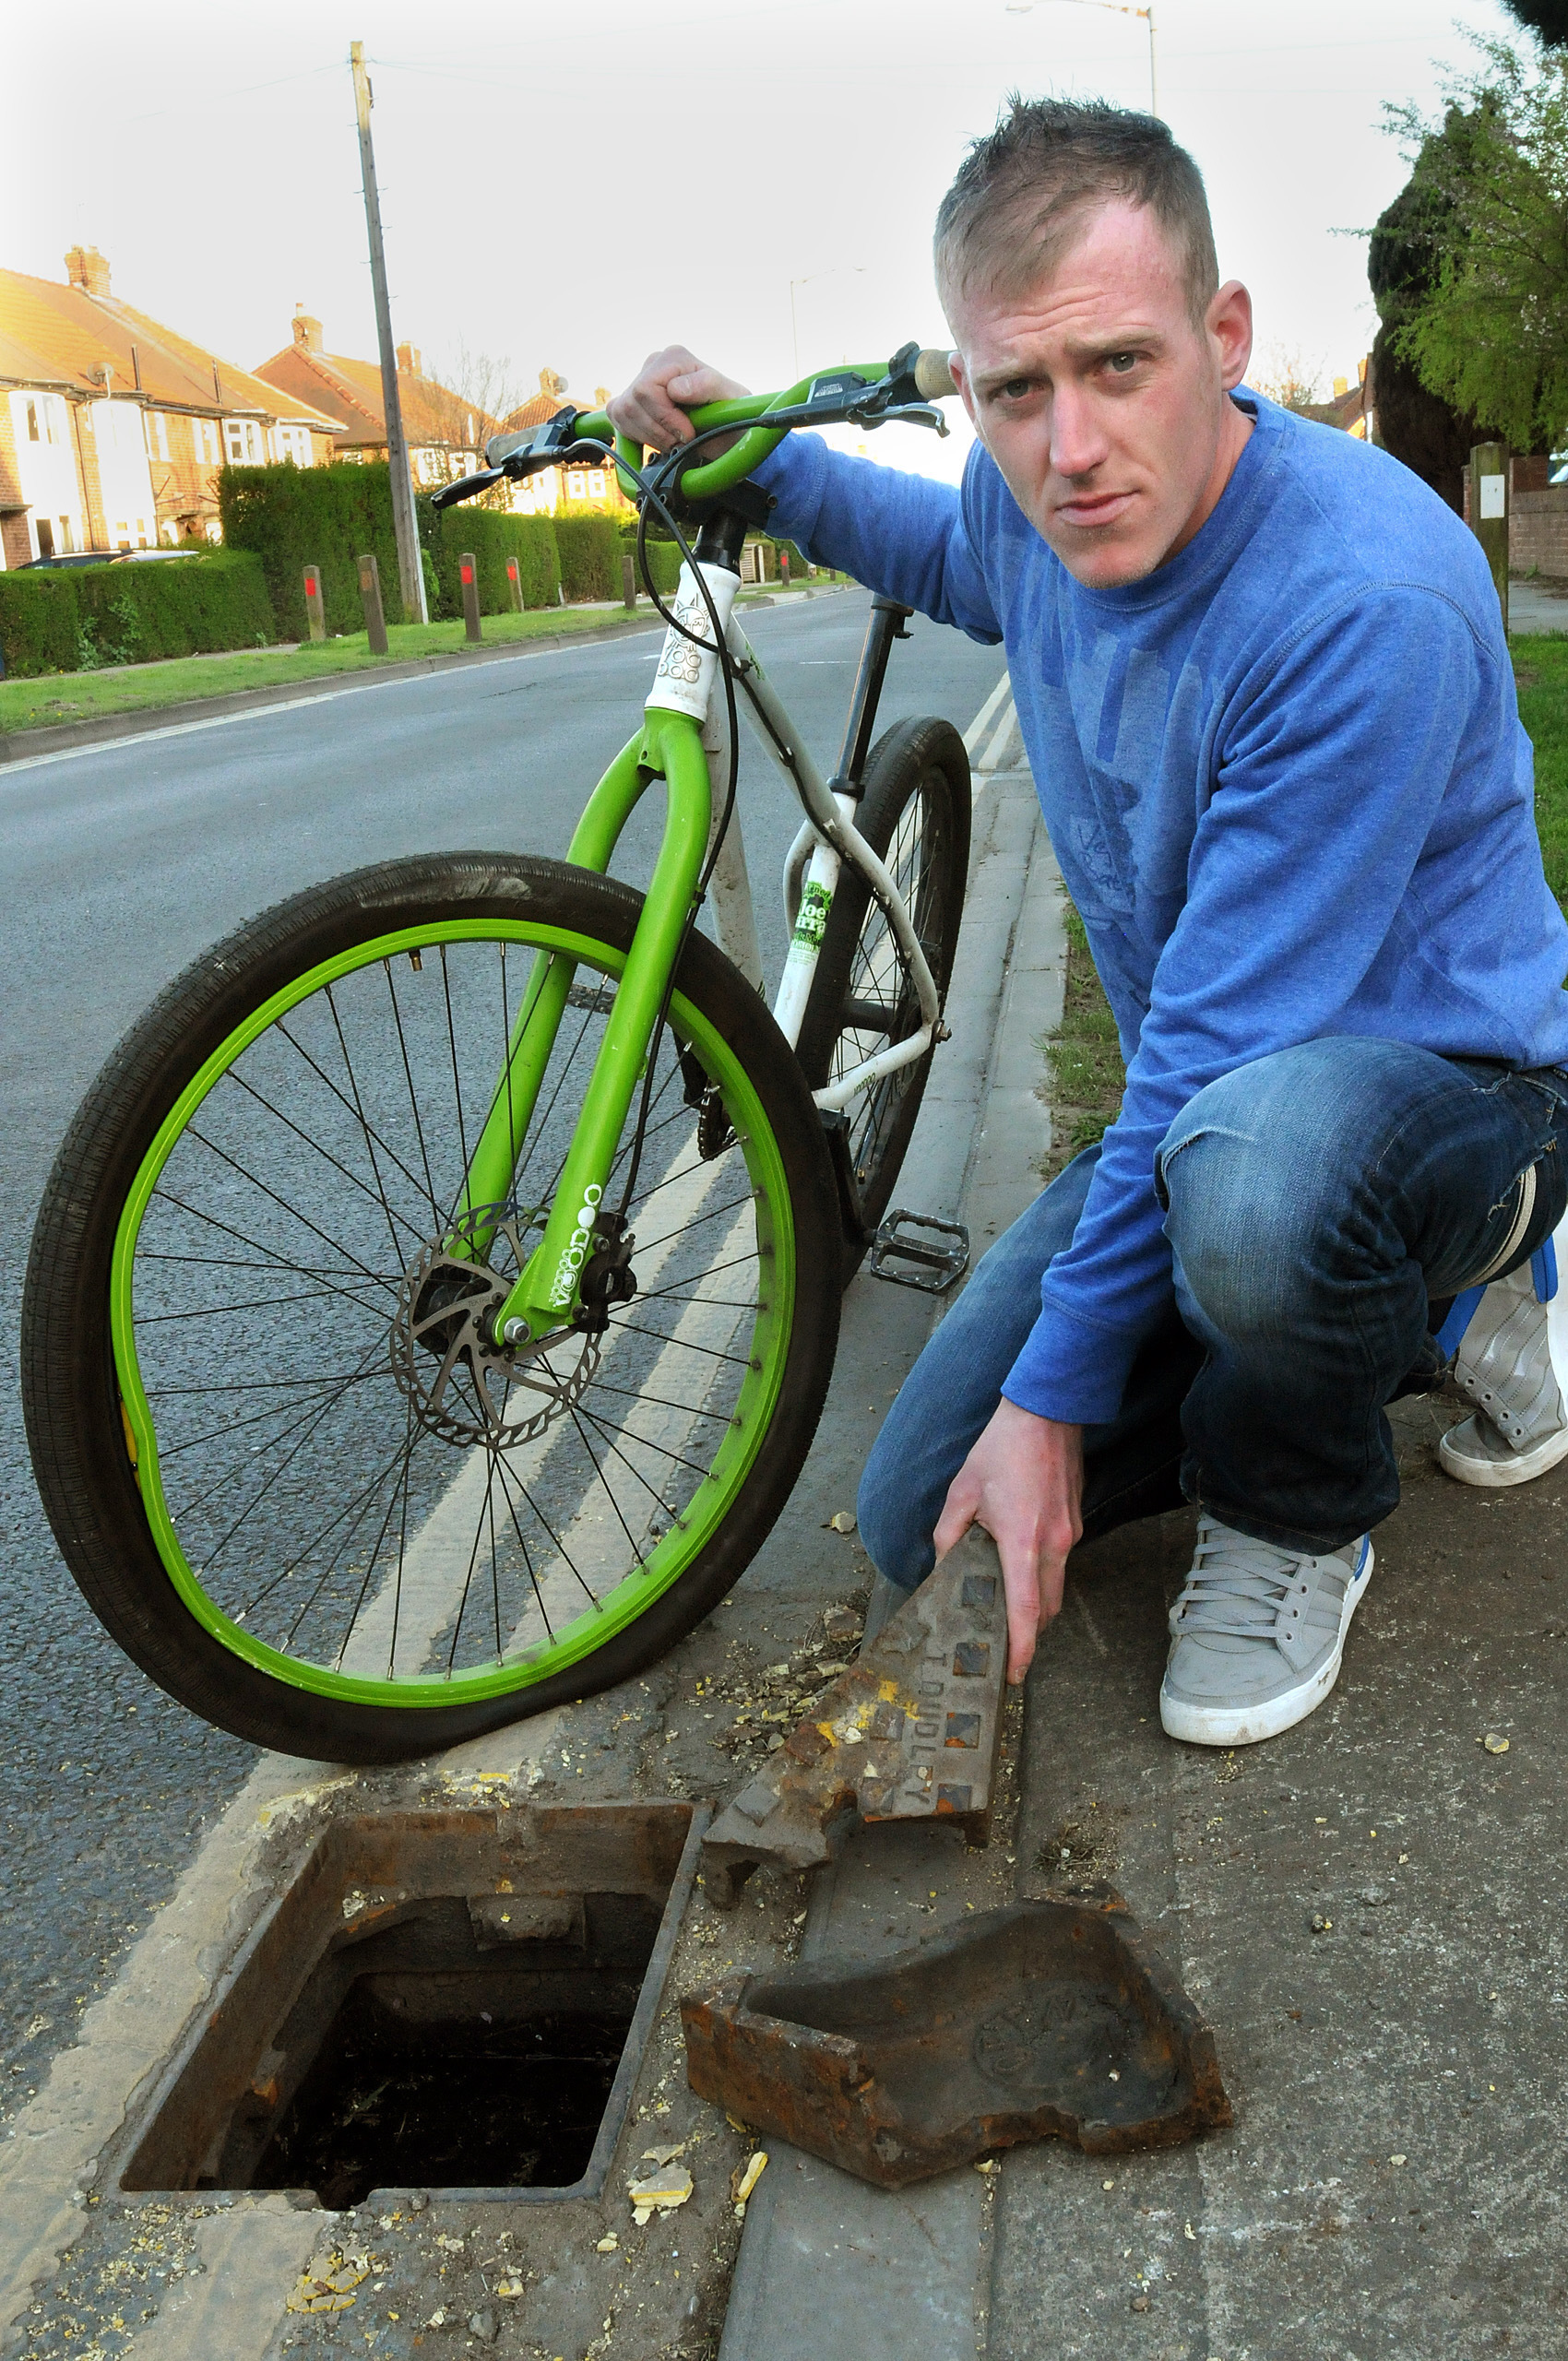 'Open manhole almost killed me', says cyclist